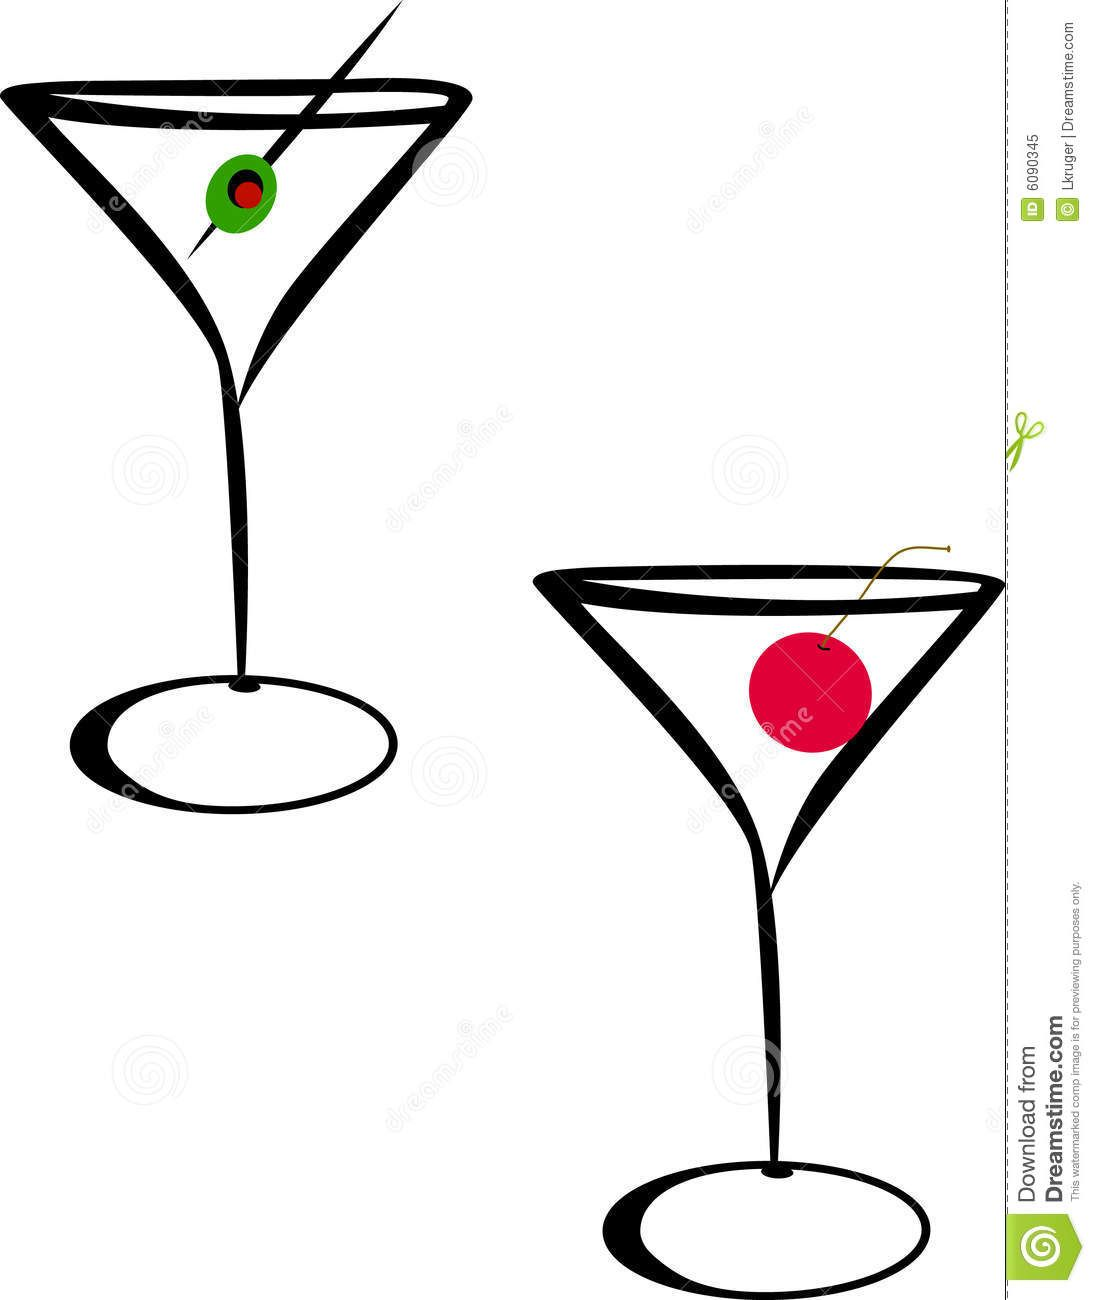 Cocktail clipart clip art. Glass free images blog